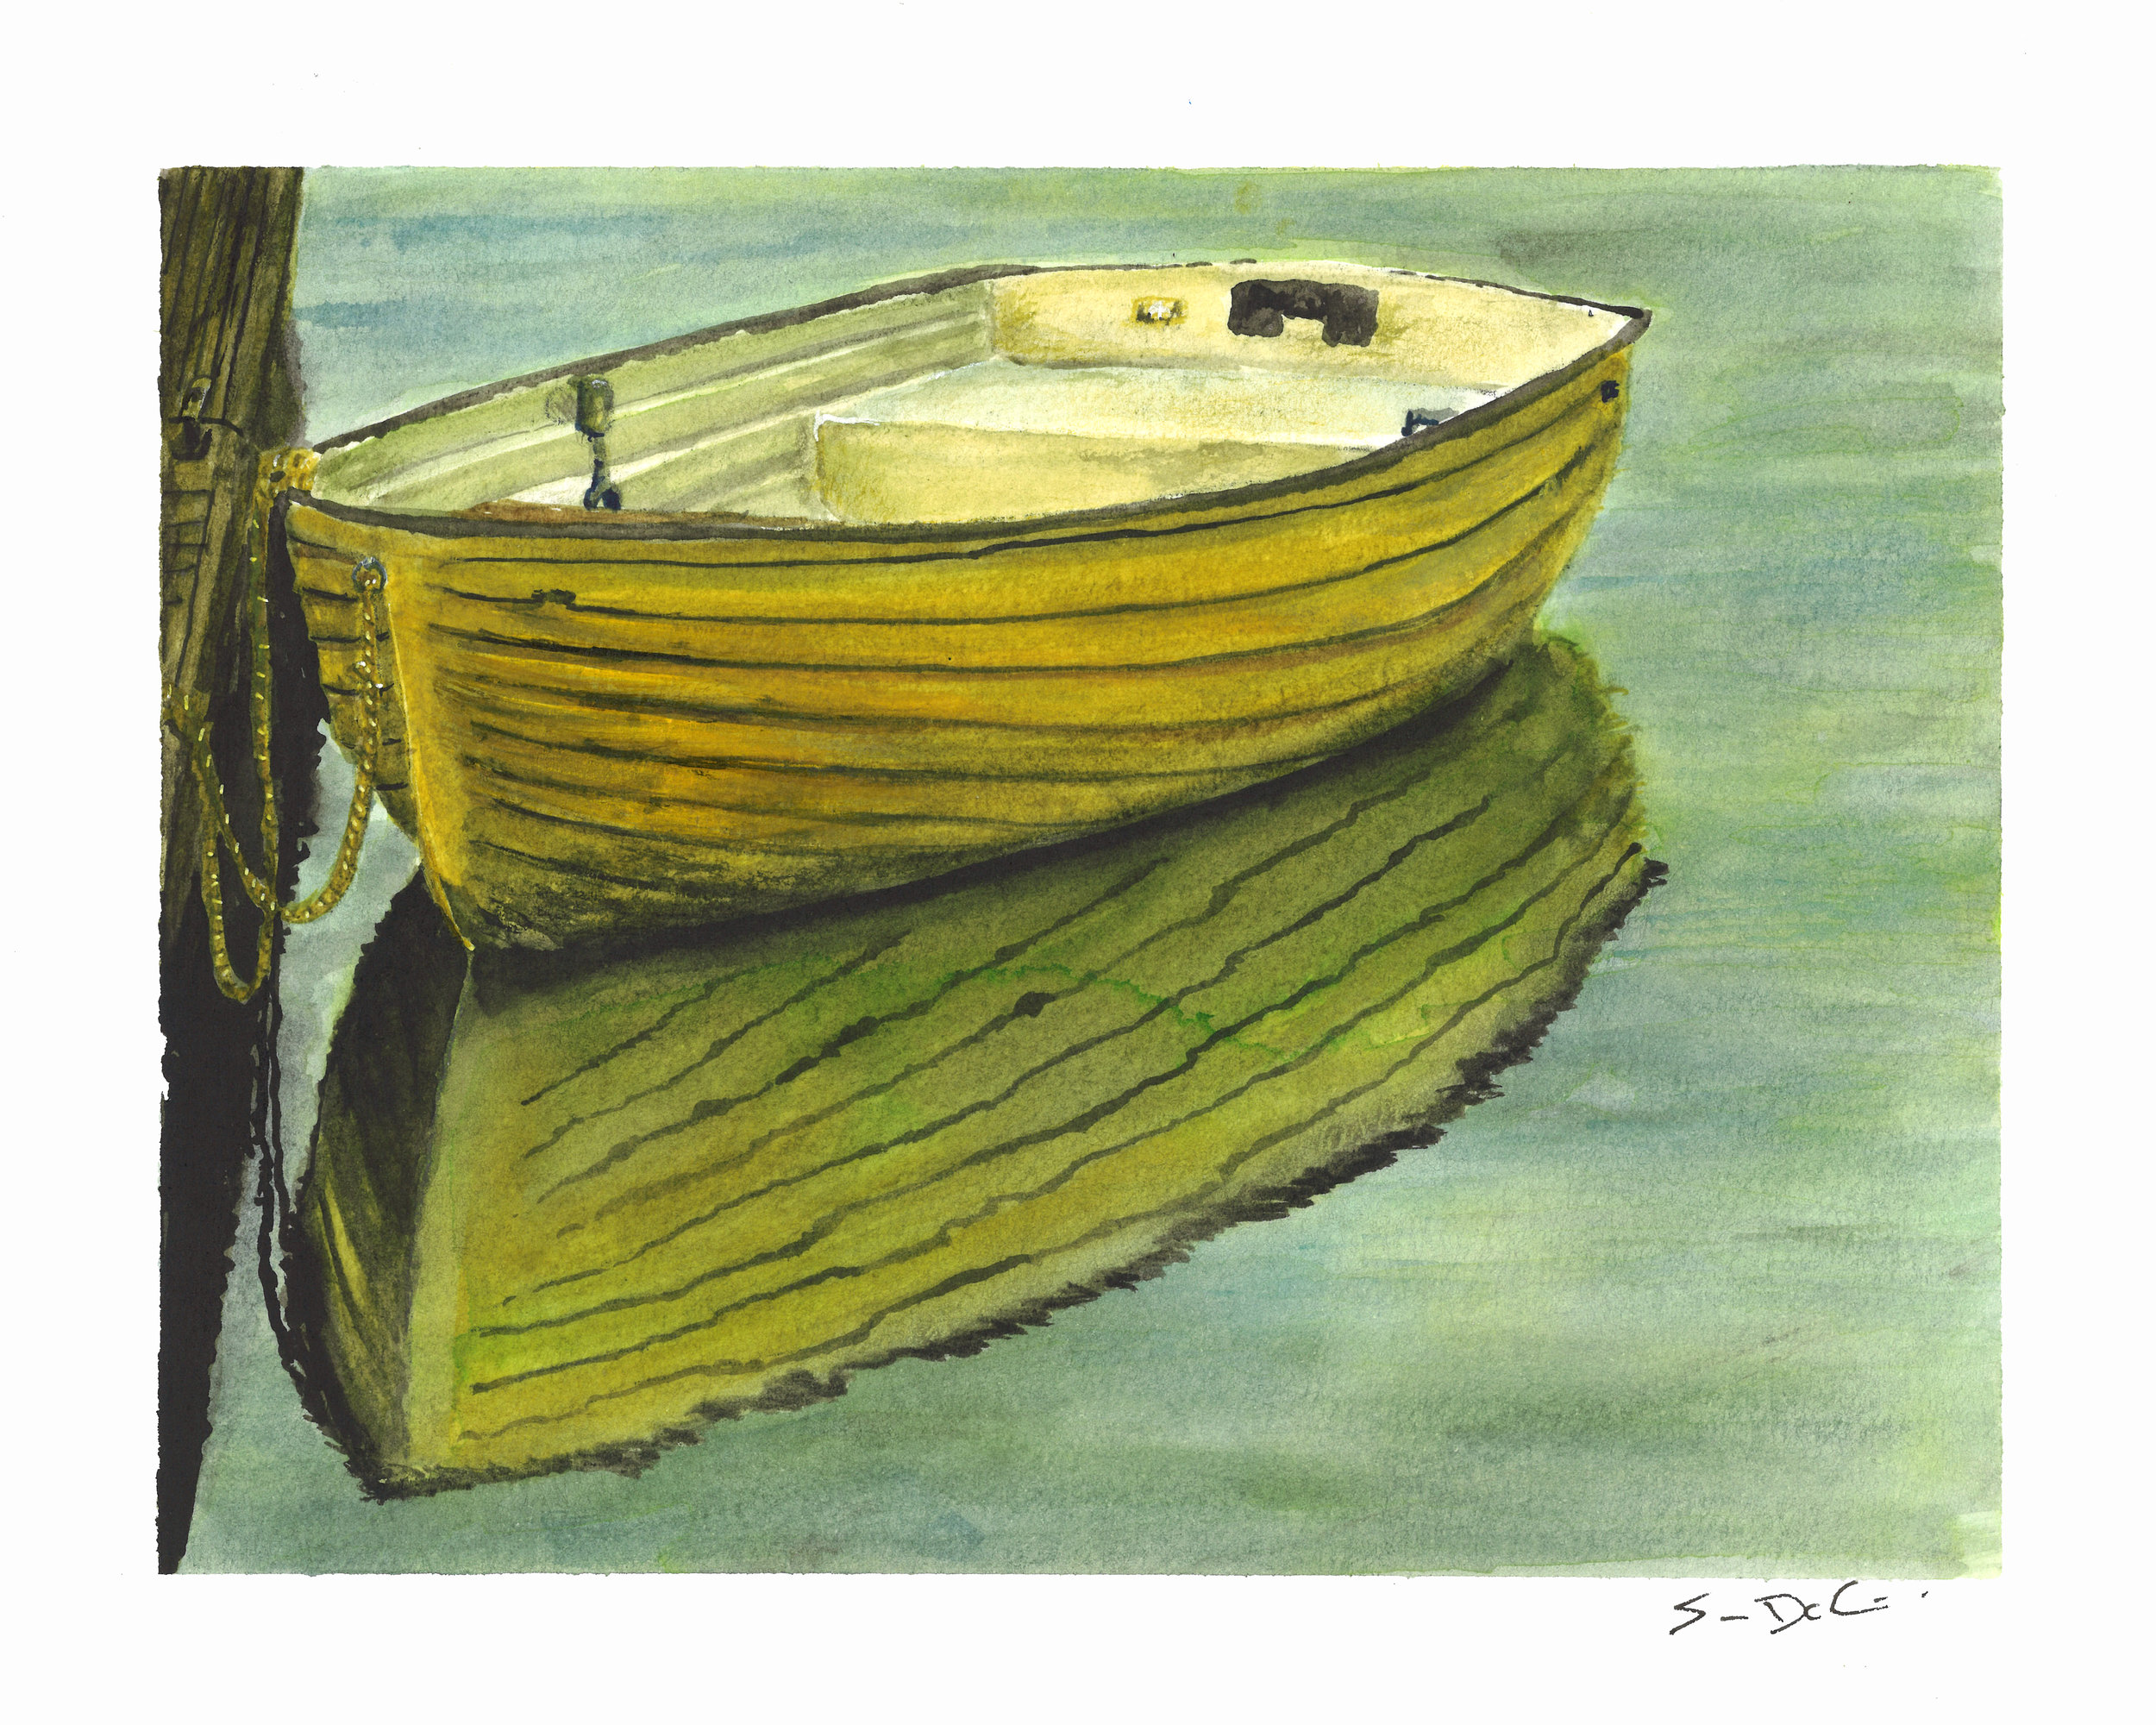 yellow rowboat - SOLD